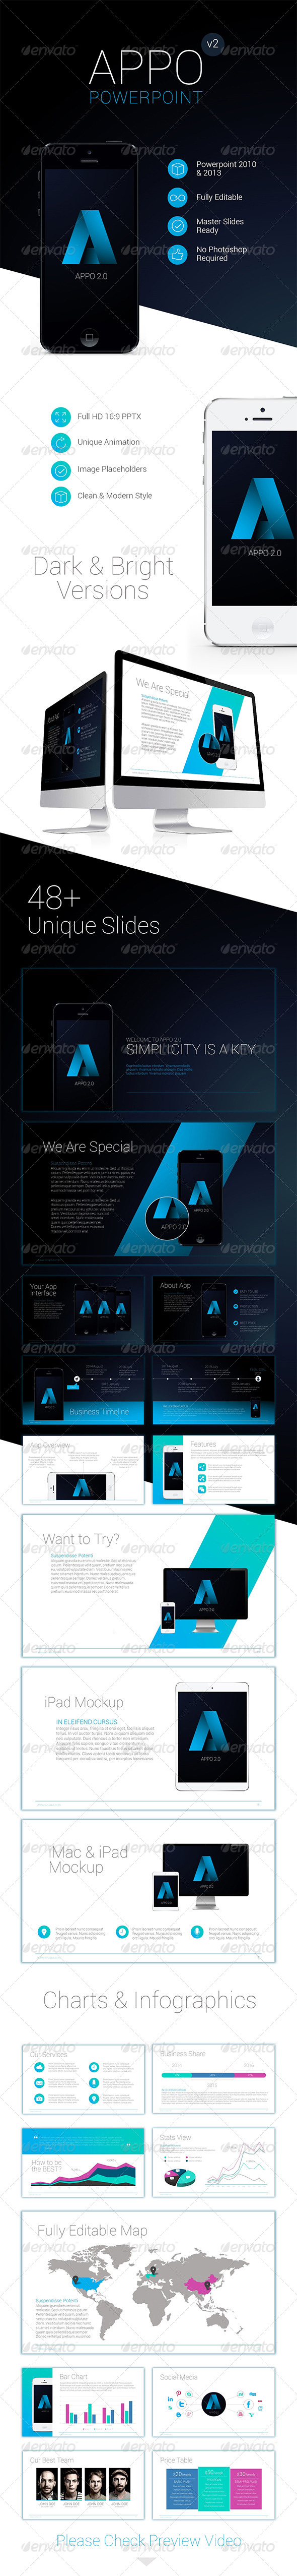 GraphicRiver Premium App Powerpoint Template 8643300